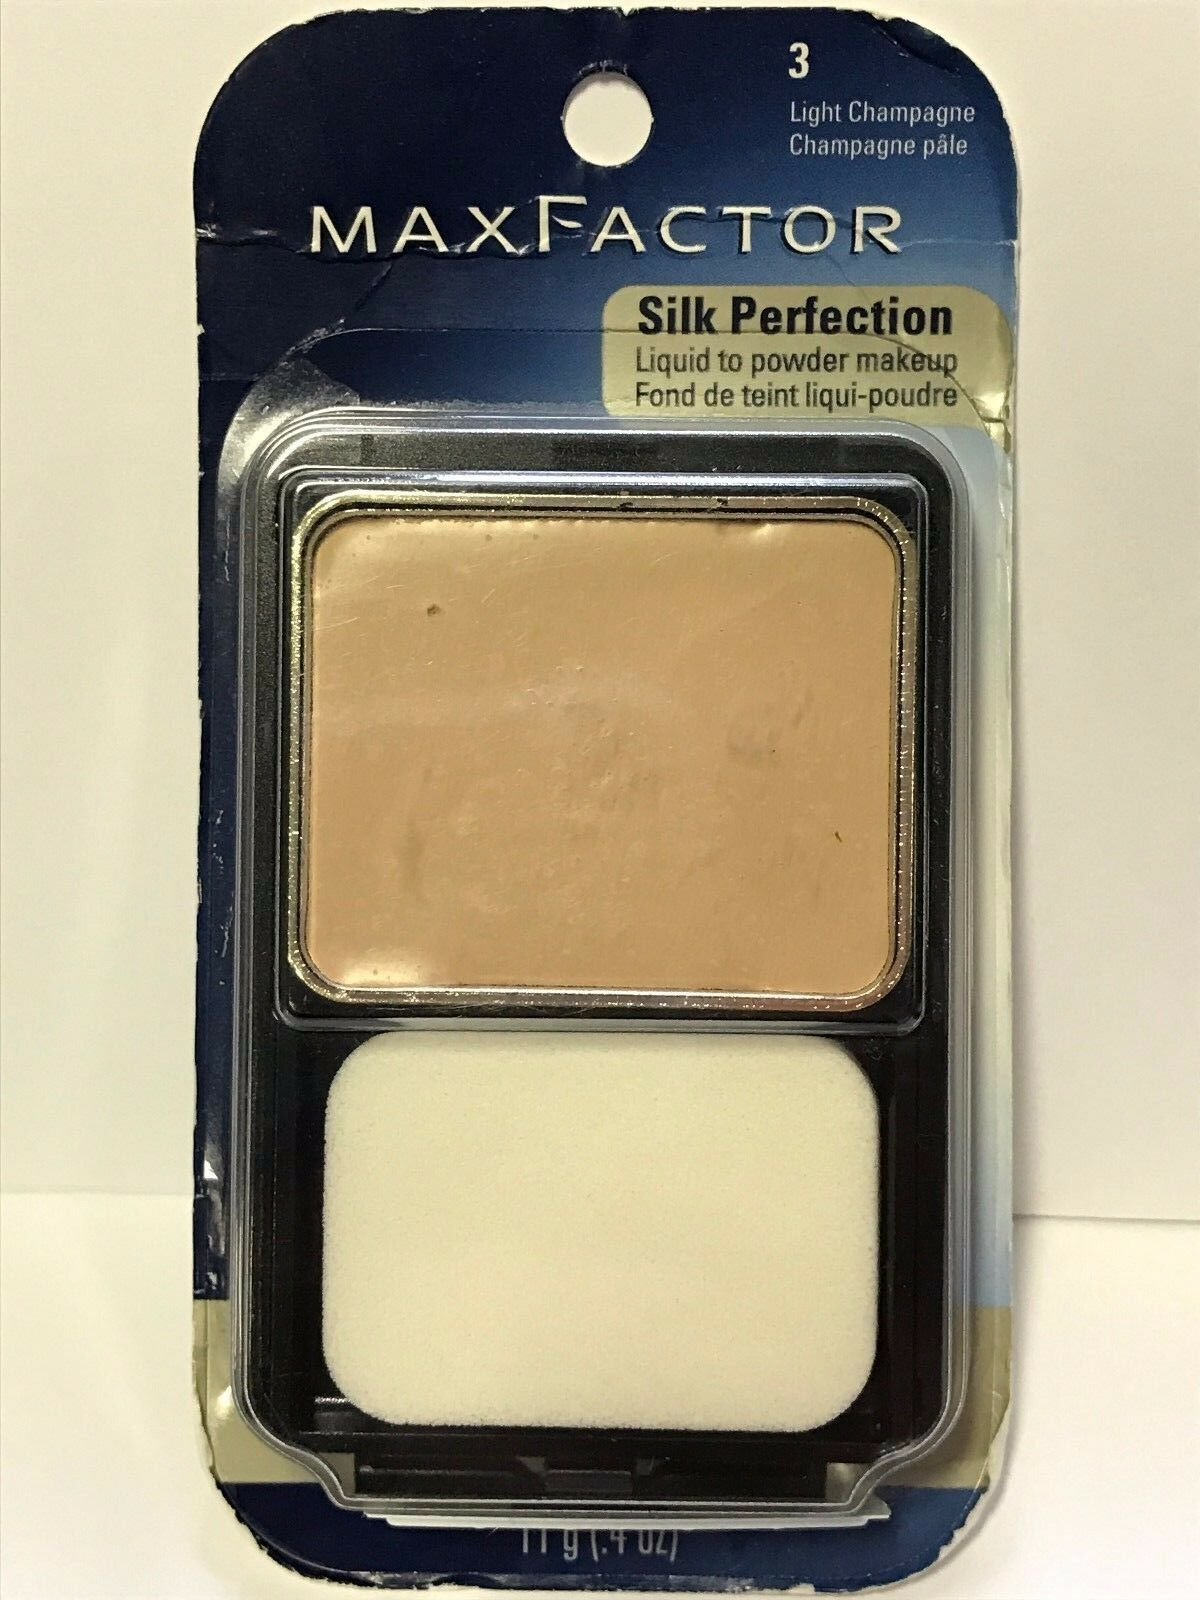 Max Factor Silk Perfection Makeup Mirrored Compact 003 Light Skod Peach Cotton Multi Finish Powder 5gram Norton Secured Powered By Verisign